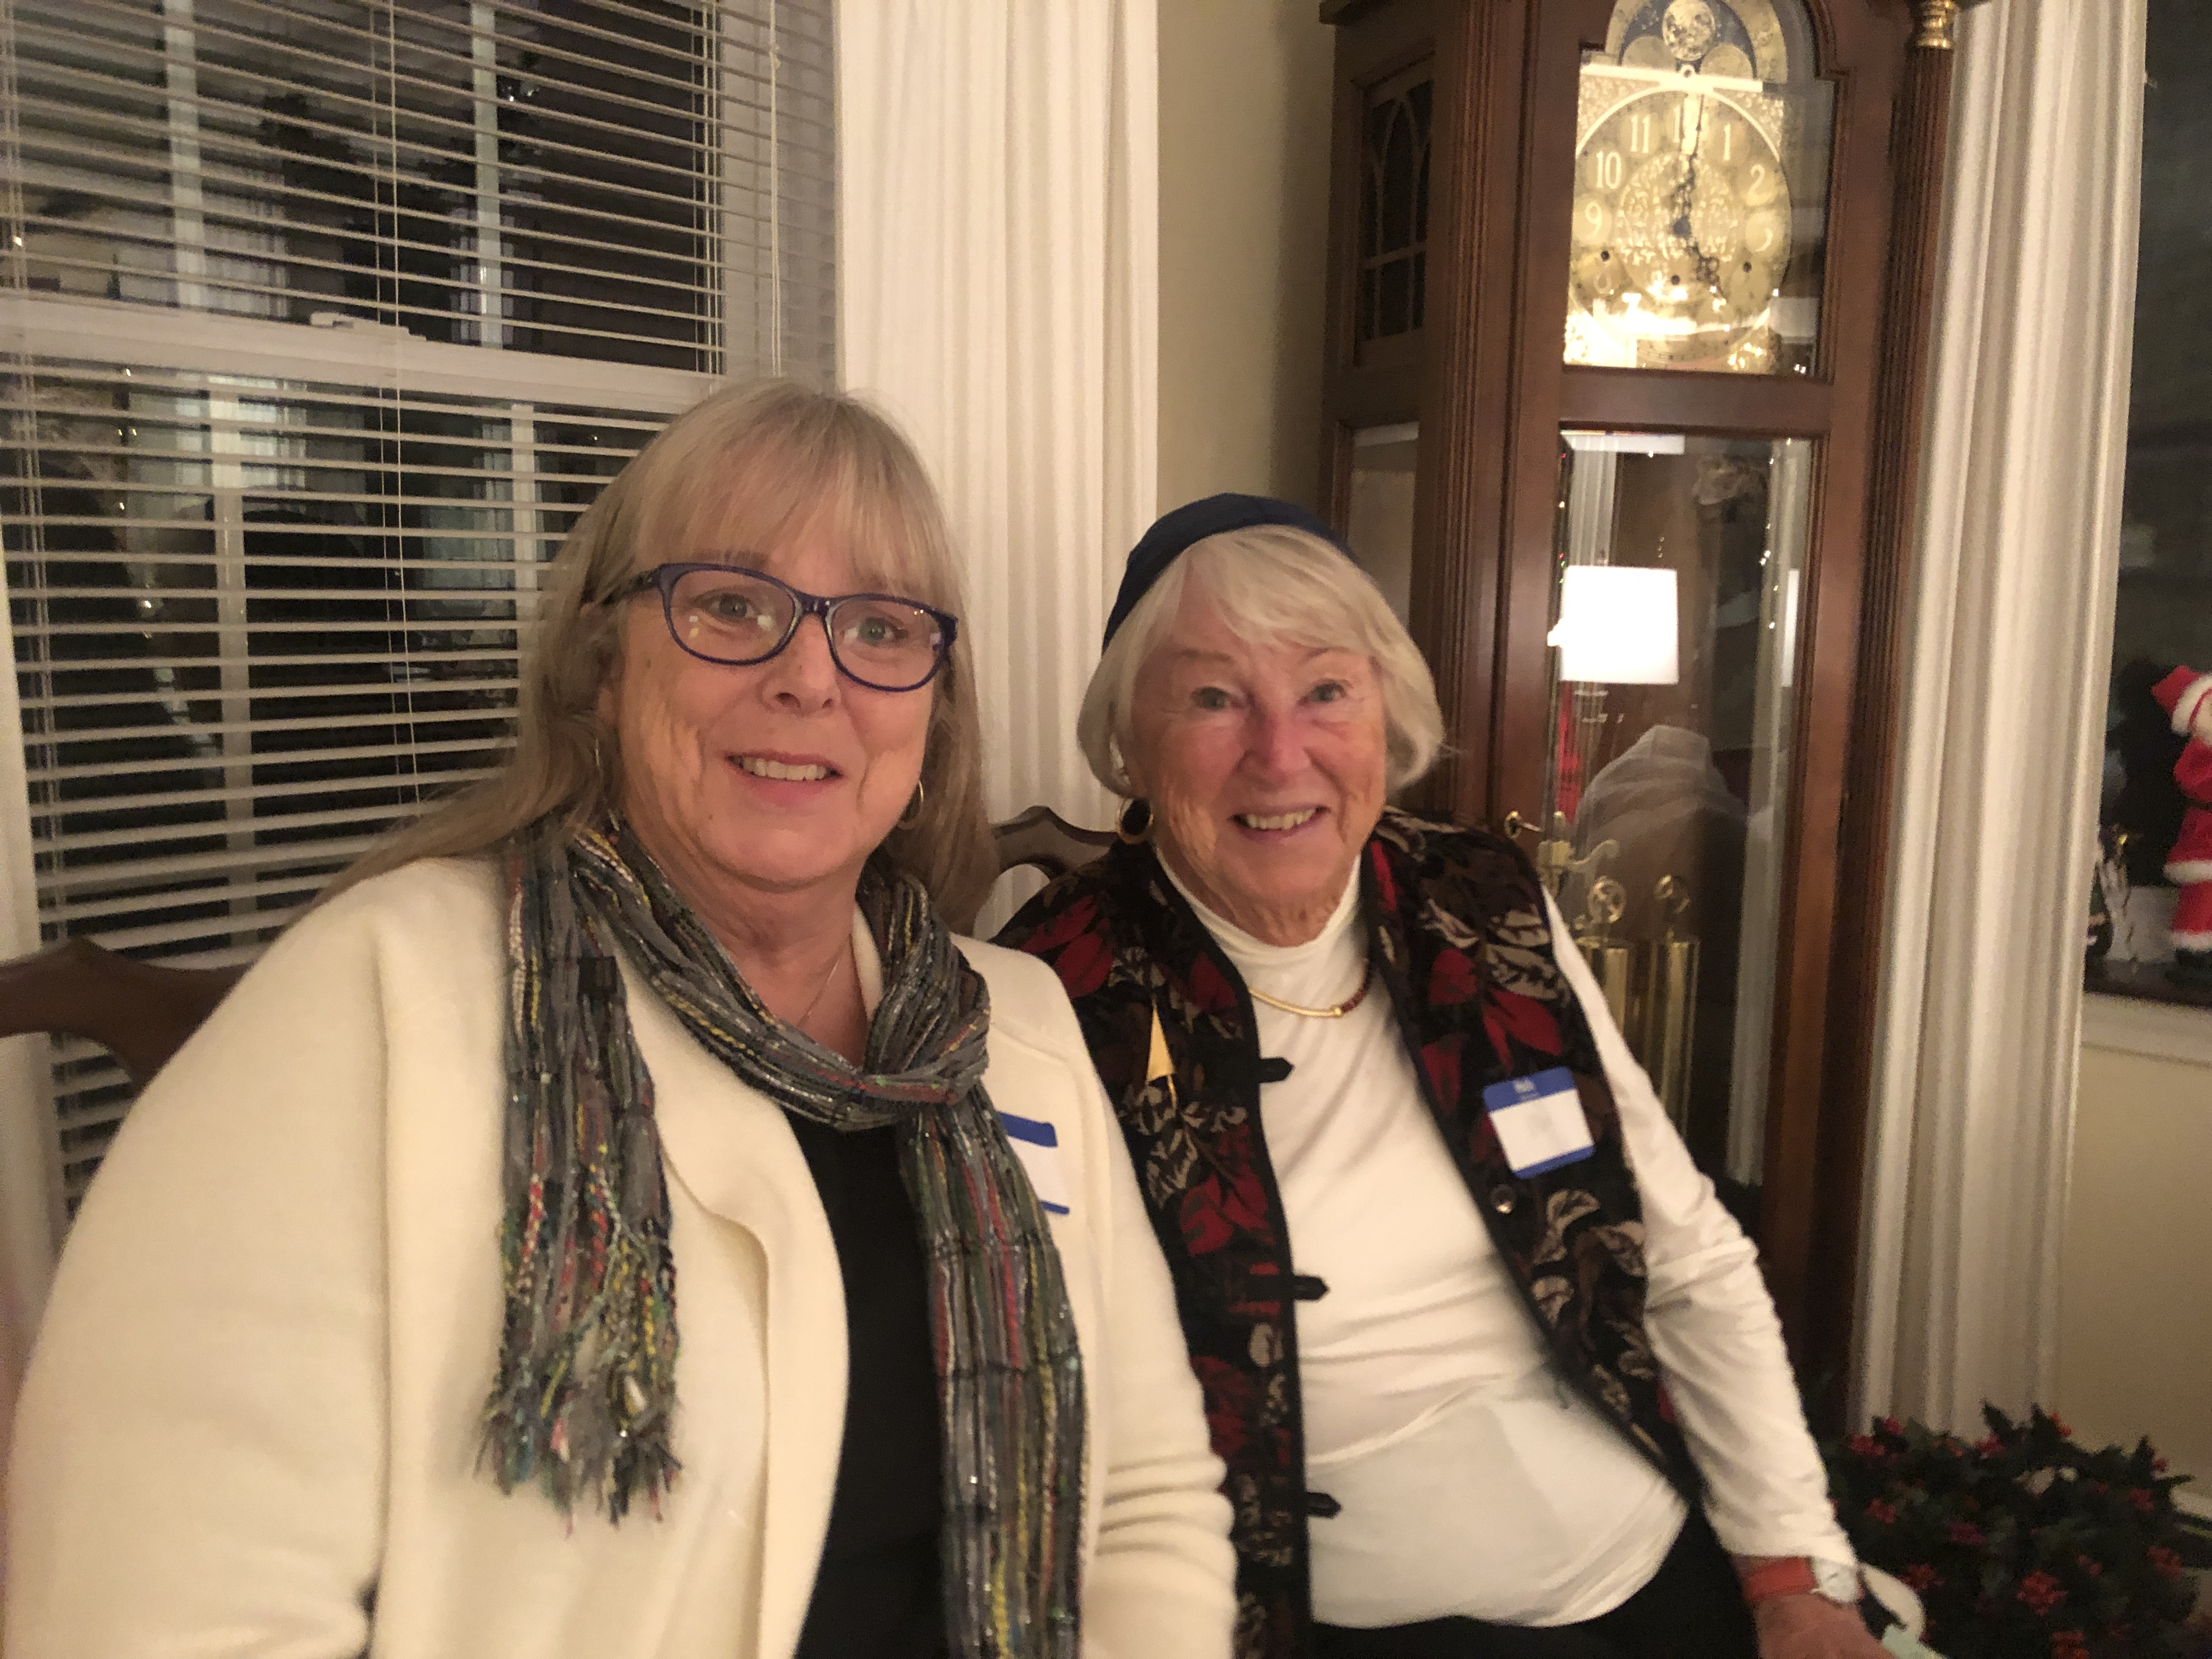 piano party dec 2019 pam and mary.JPG